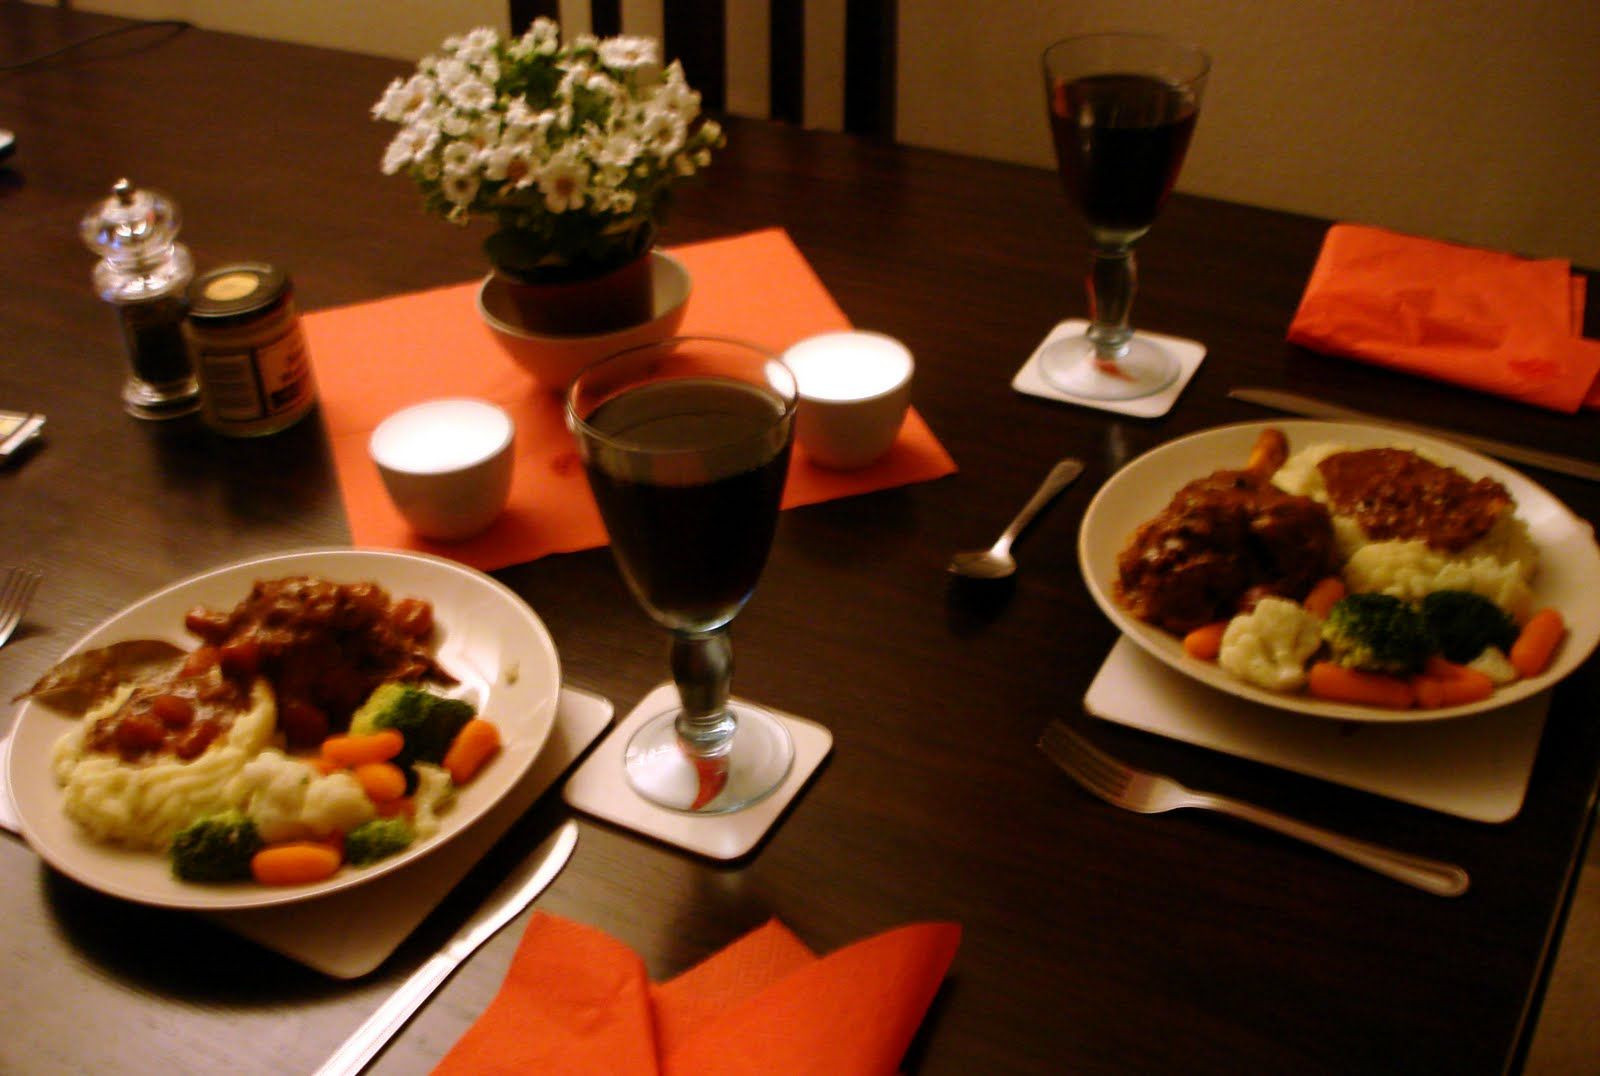 Romantic Dinner For Two  Romantic Dinner For Two At Home World The colors are